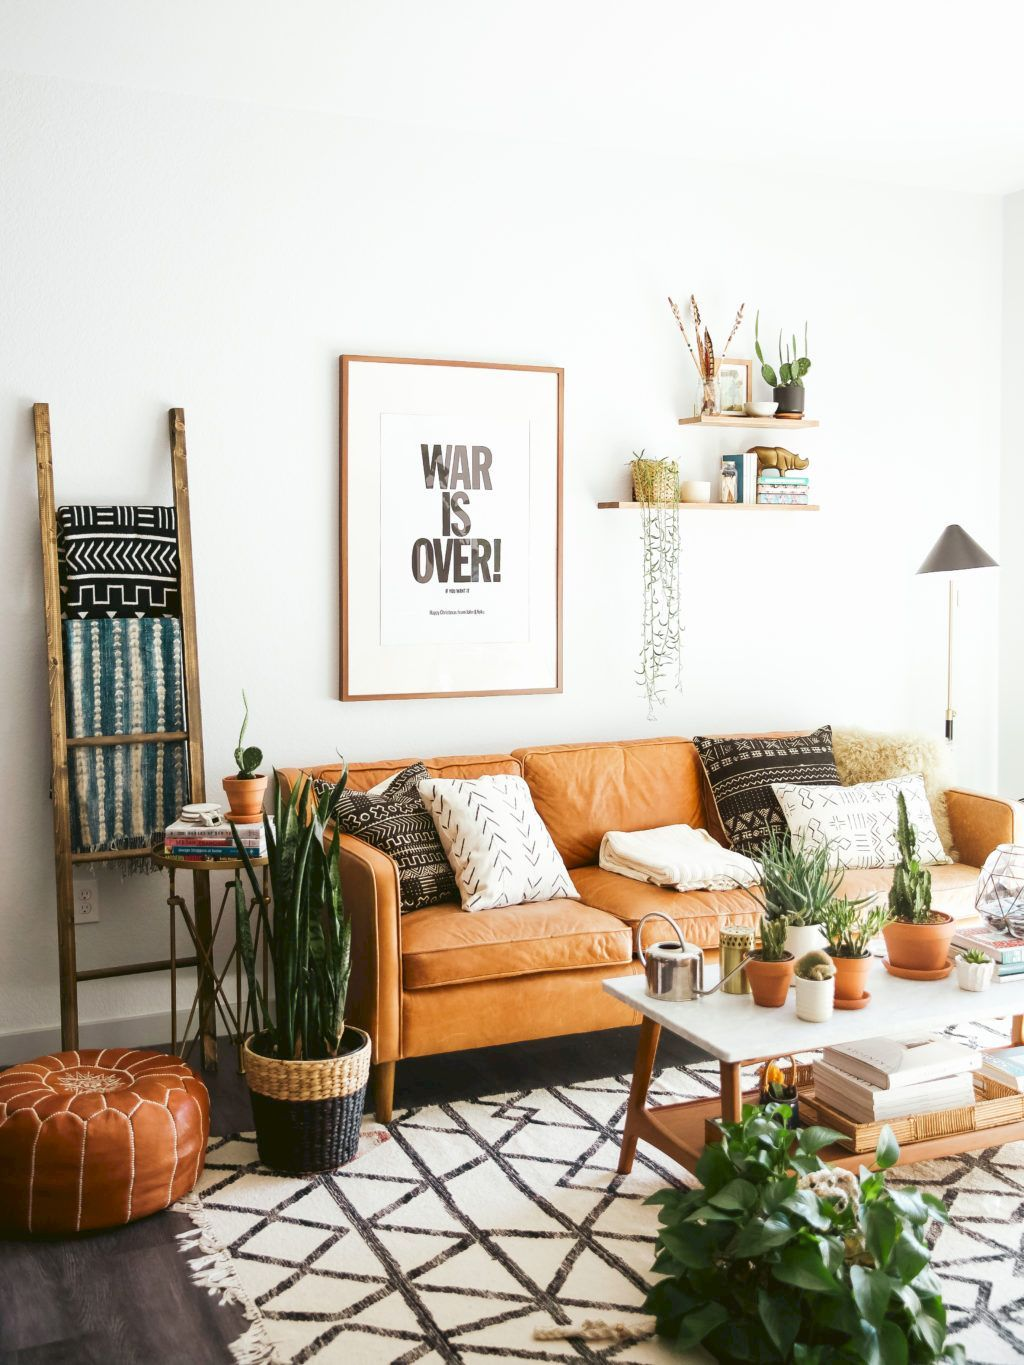 Cool stunning boho chic living room decor ideas on  budget https also rh pinterest